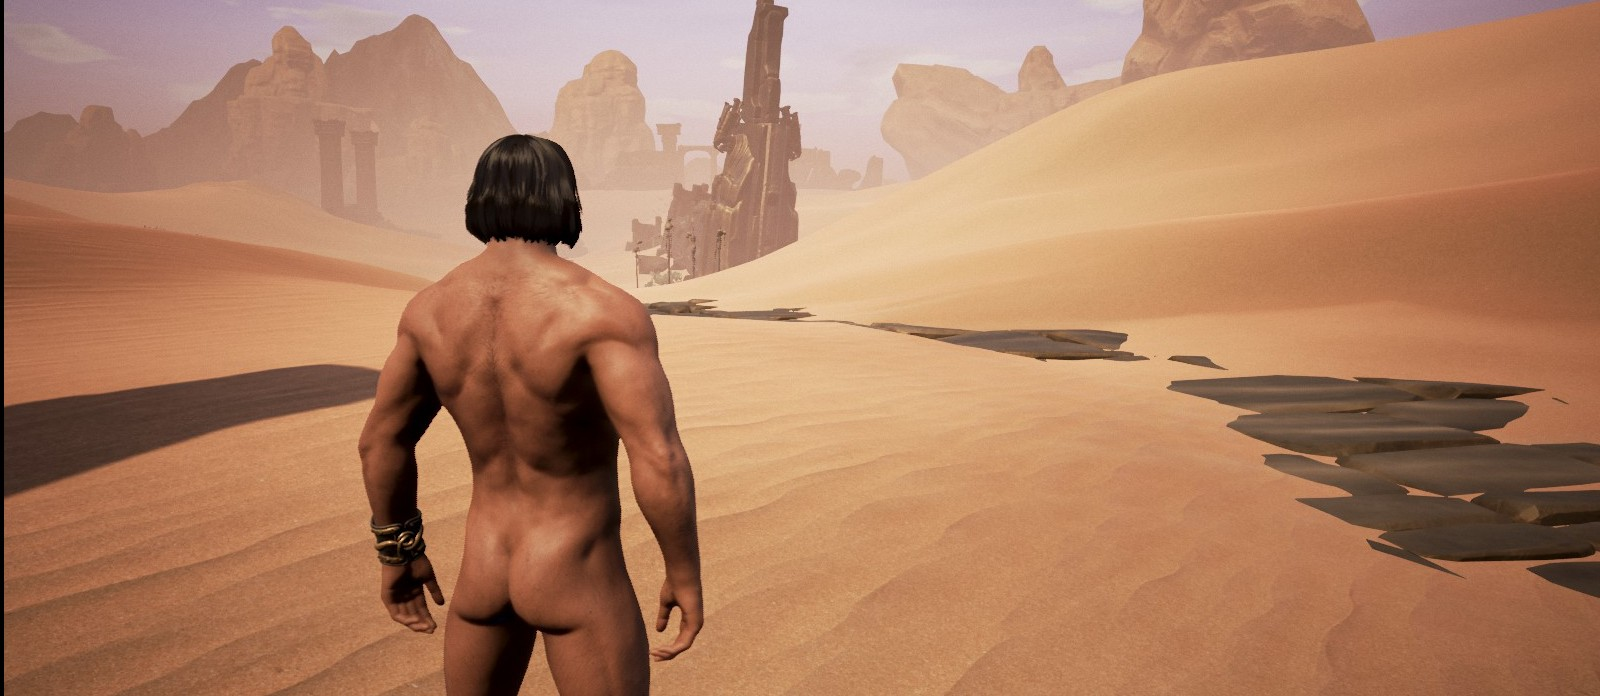 Nude artwork in pc conan game sex image